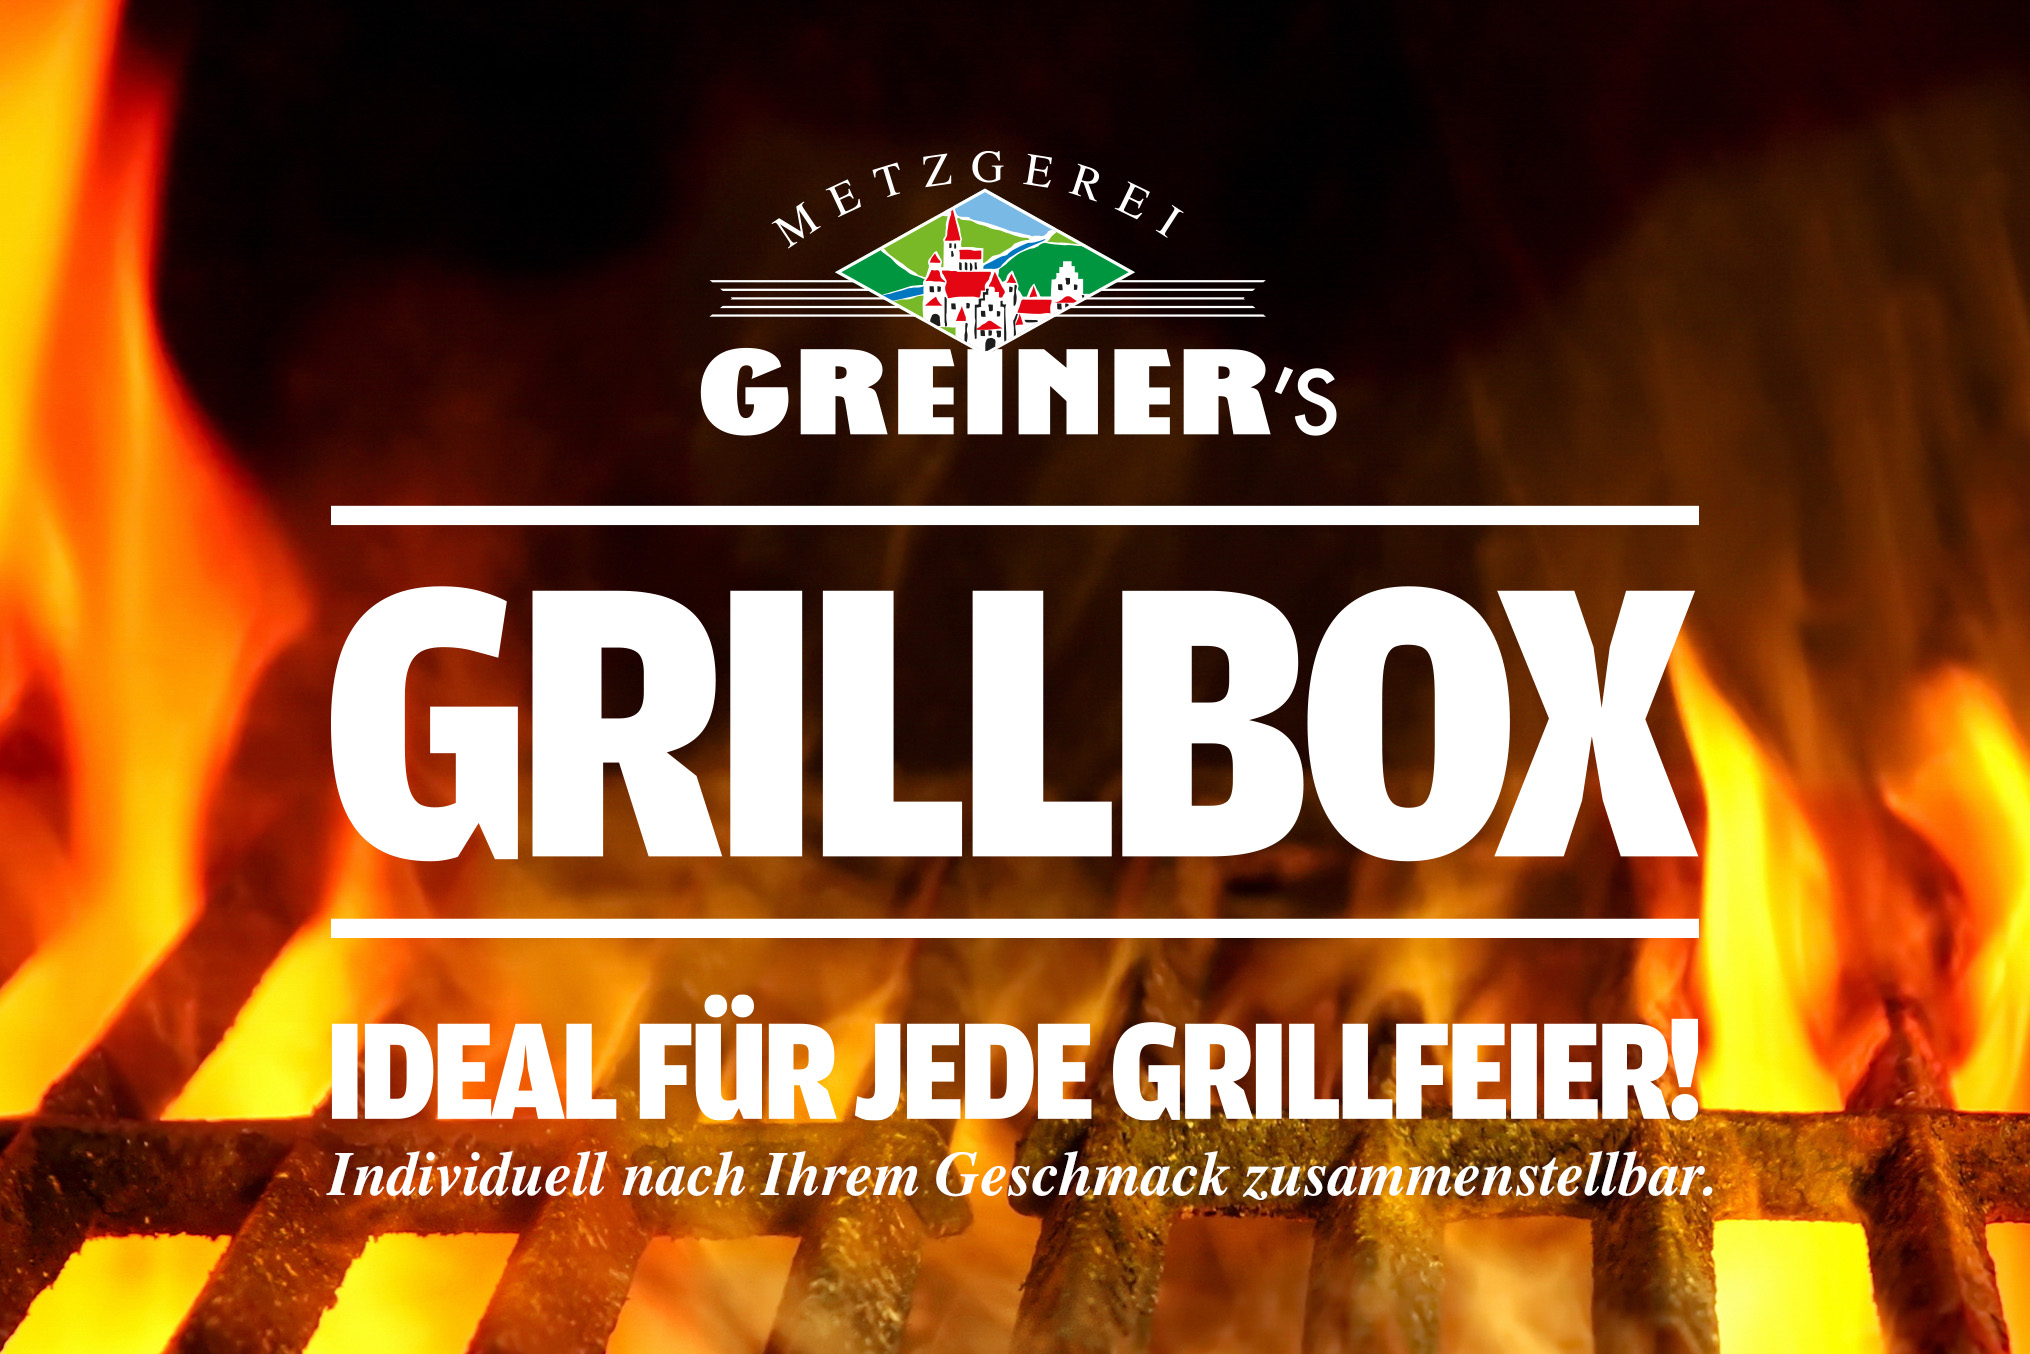 Greiner_Grillbox_Kasse